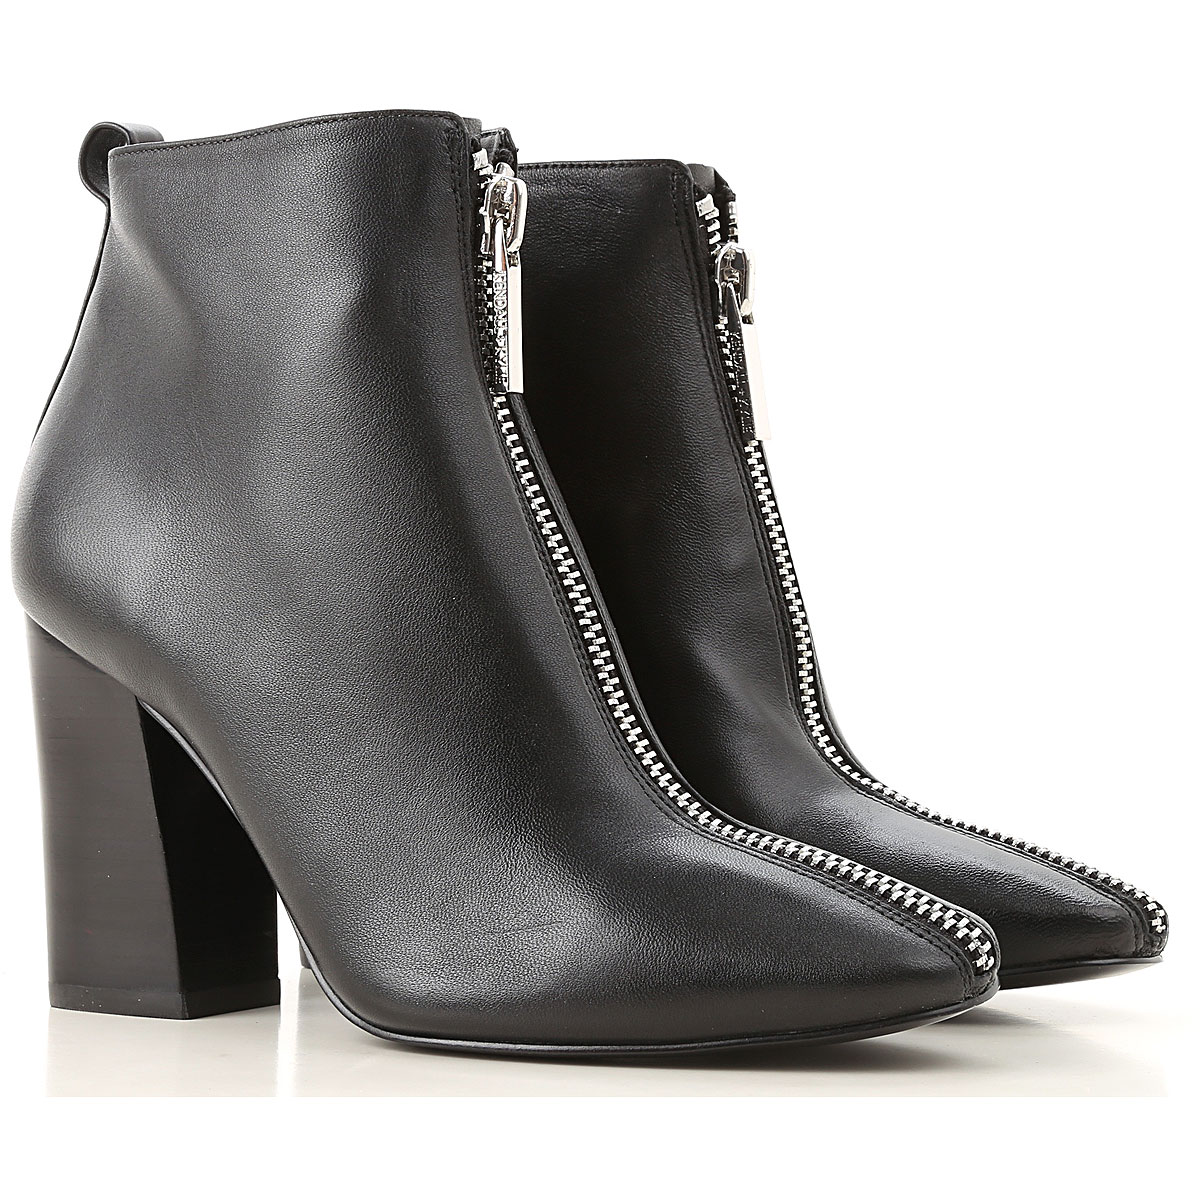 Image of Kendall Kylie Boots for Women, Booties, Black, Leather, 2017, 10 6 6.5 7 8 9 9.5